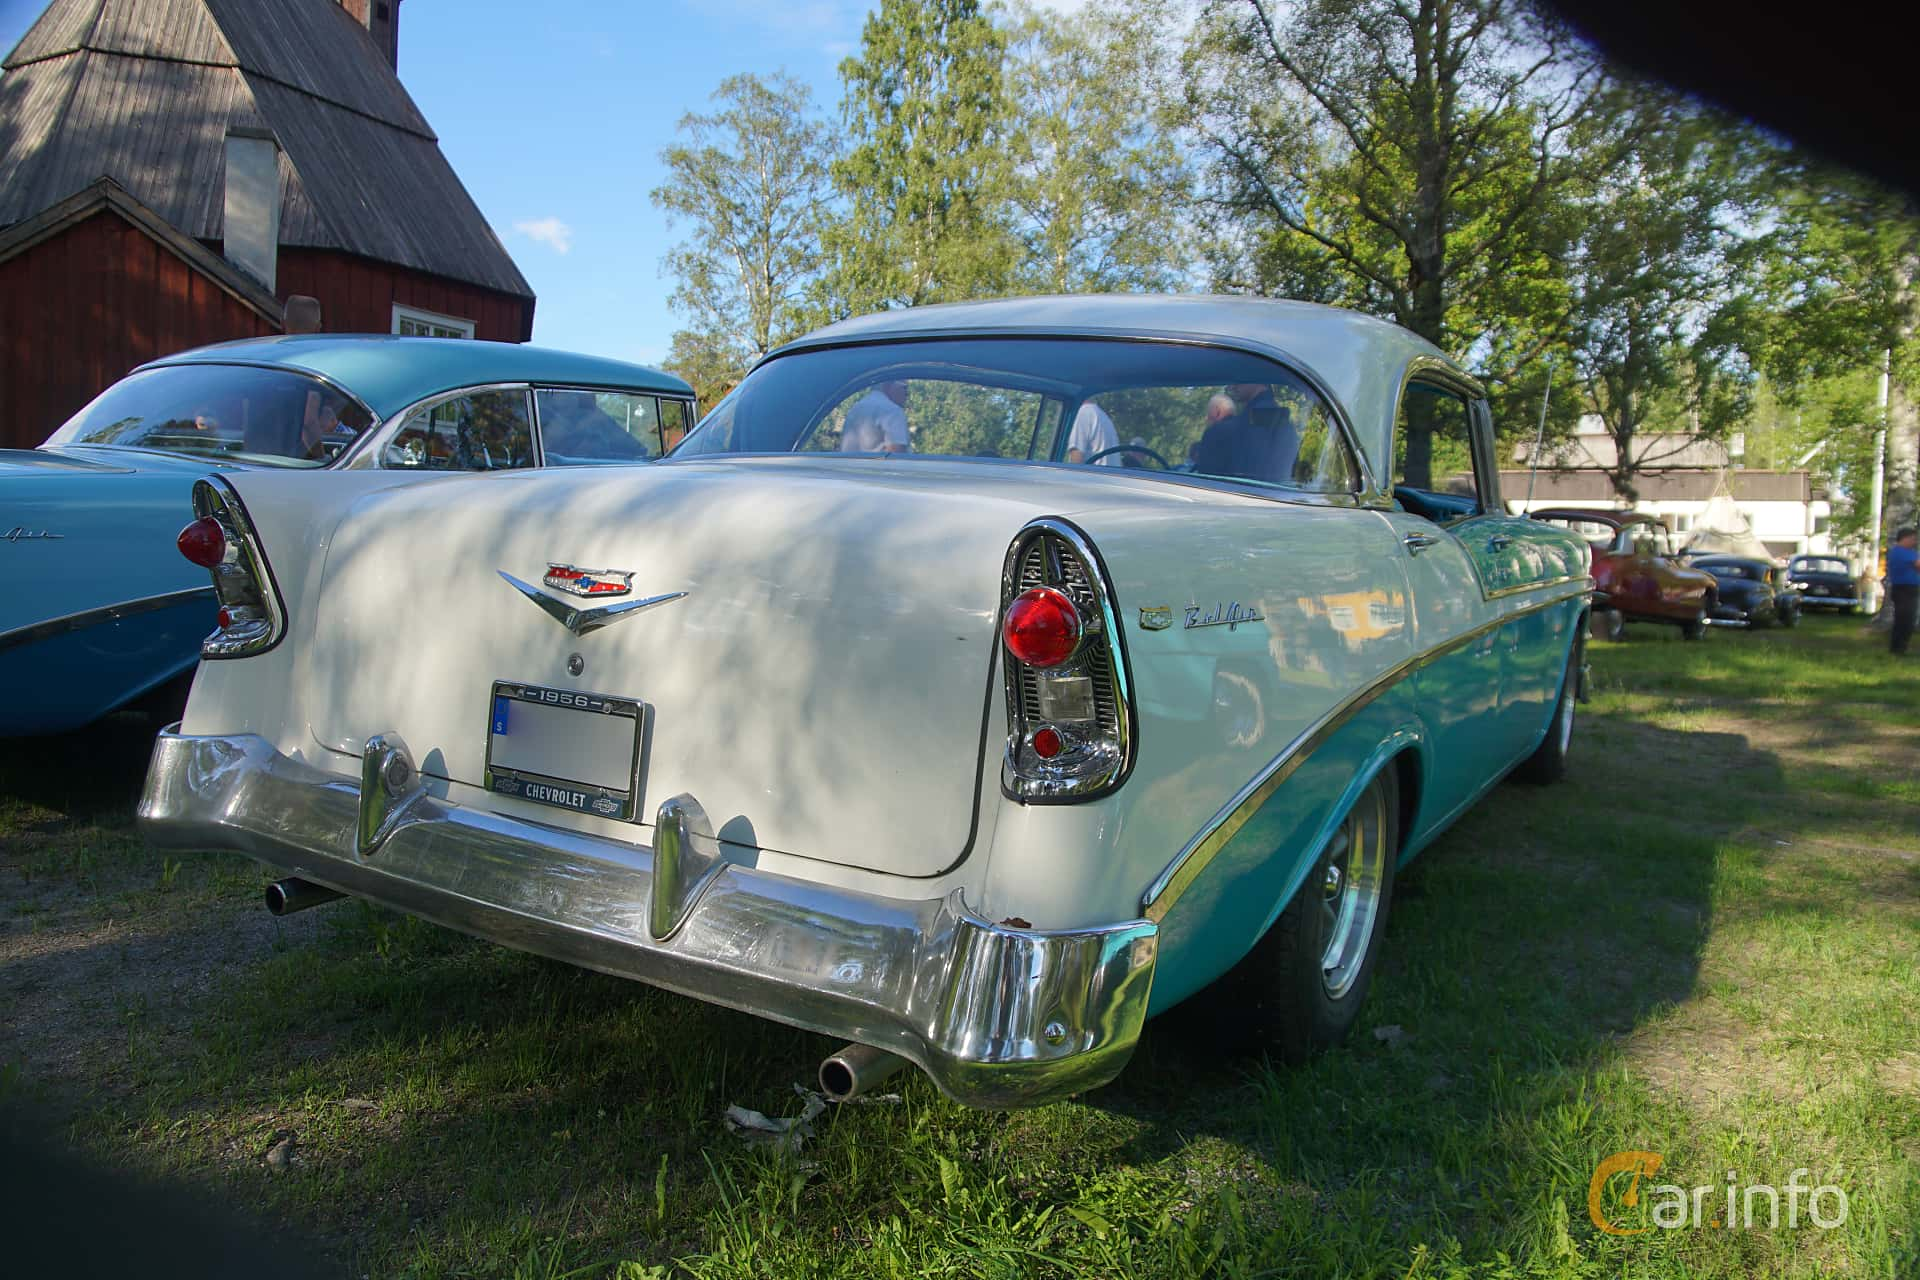 Chevrolet Bel Air Sport Sedan 4.3 V8 Manual, 165hp, 1956 at Onsdagsträffar på Gammlia Umeå 2019 vecka 25